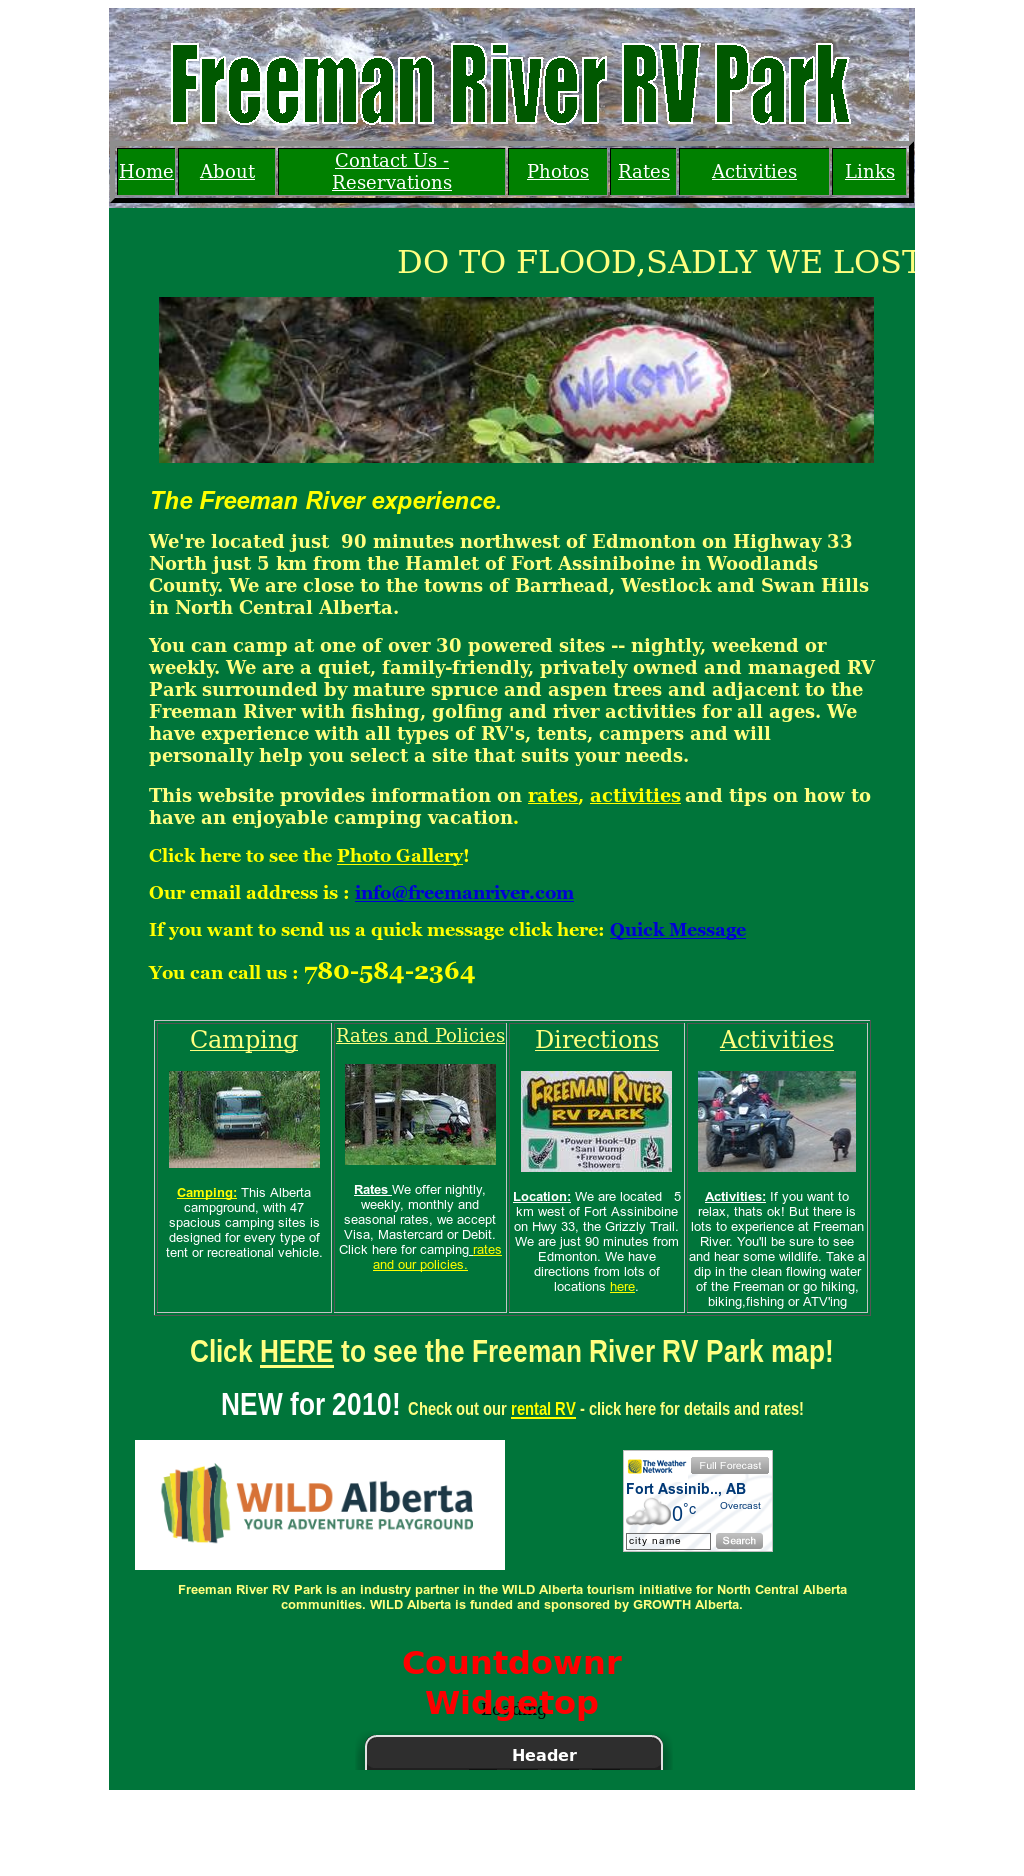 Freeman River RV Park Competitors, Revenue and Employees